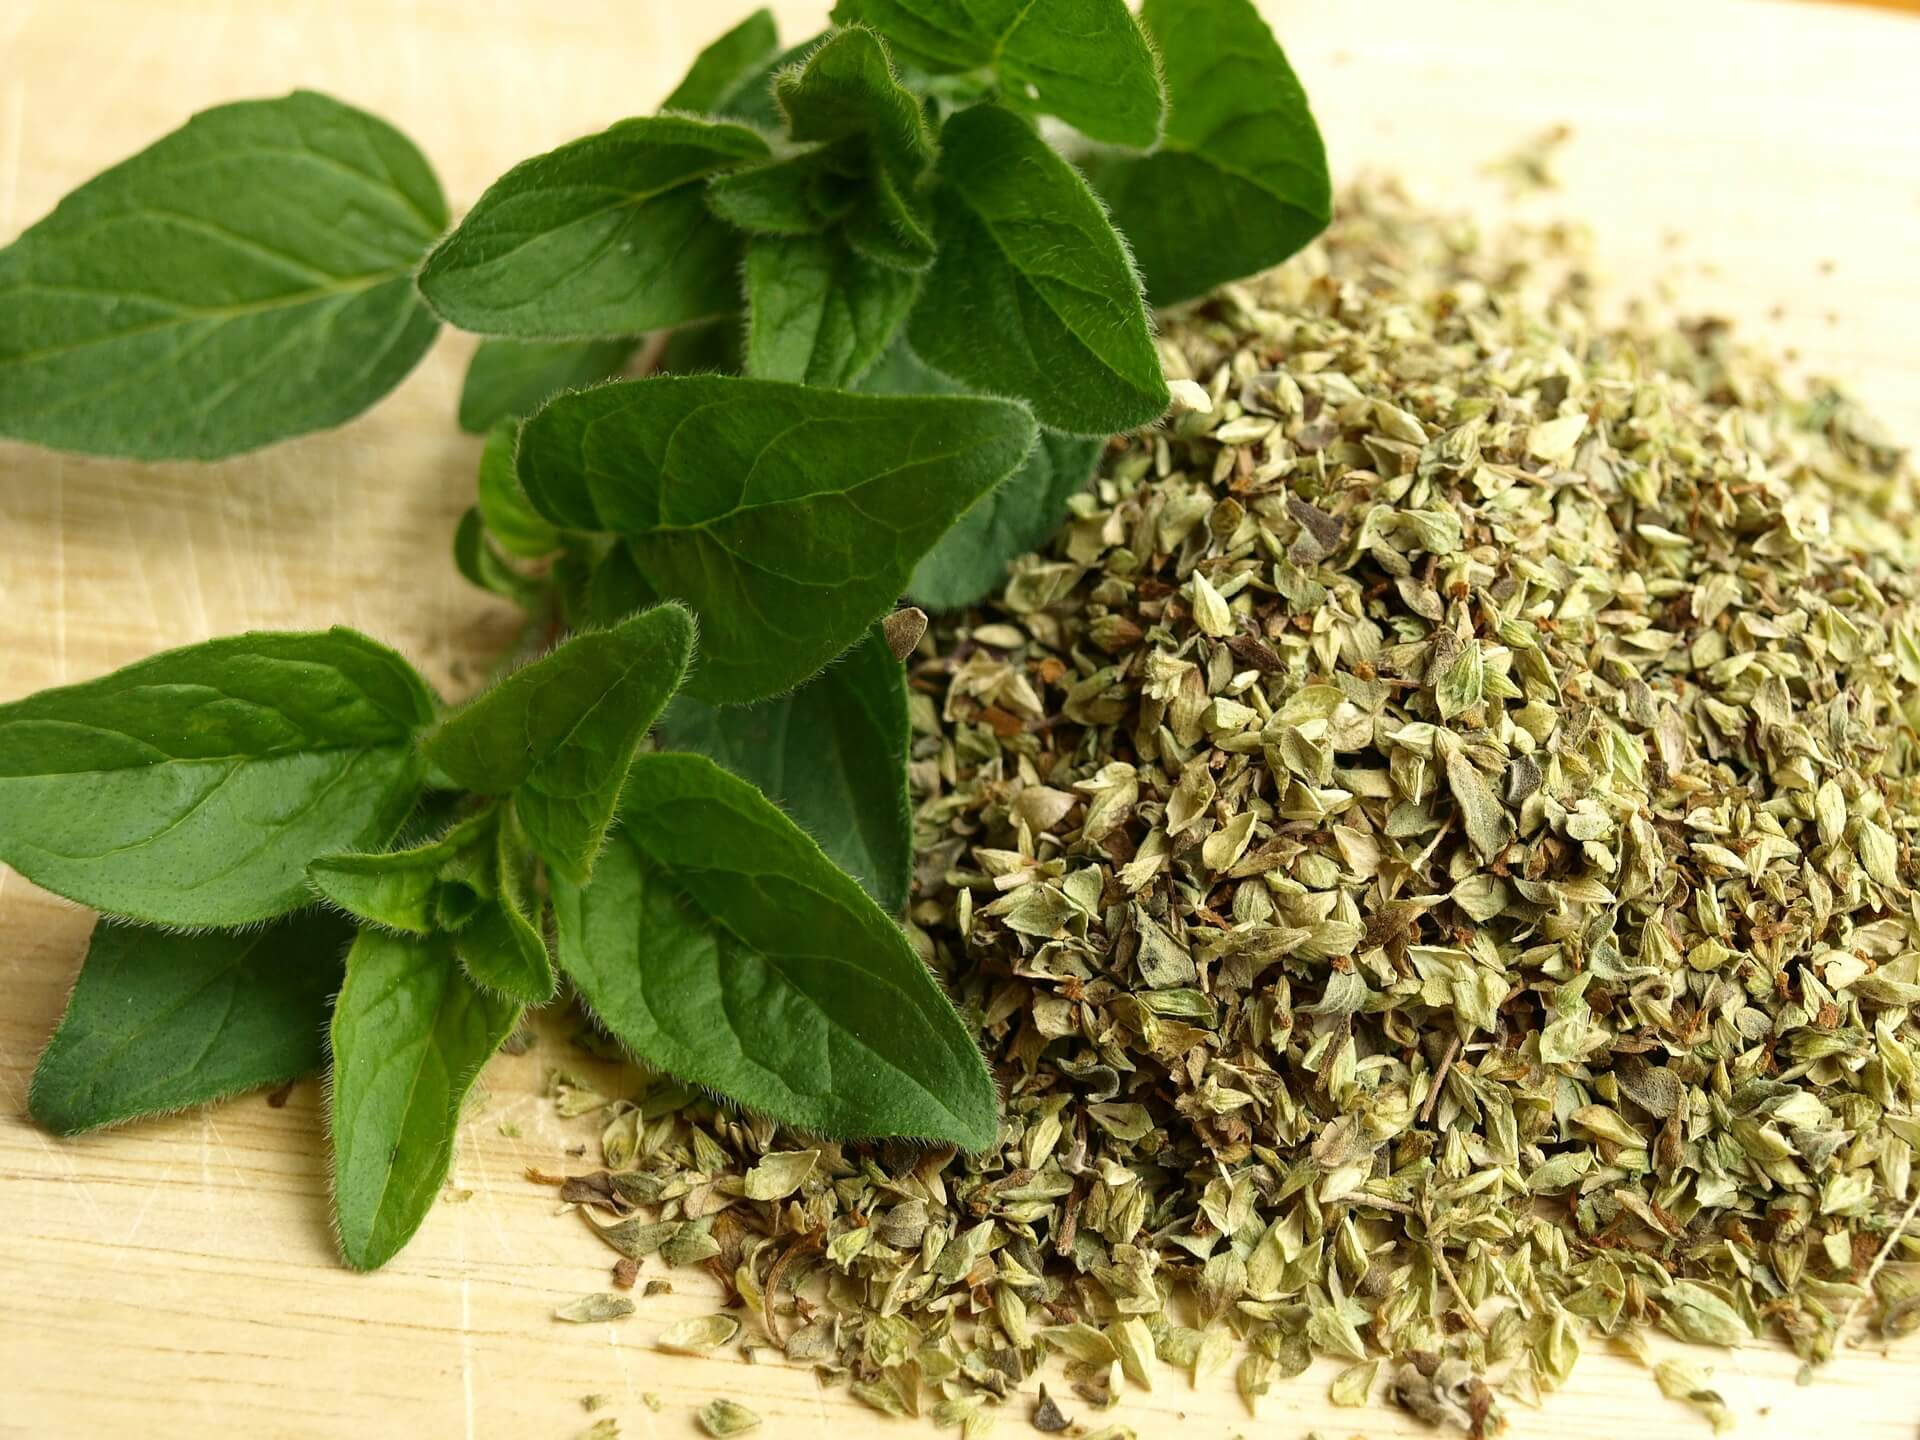 As you'll read below, this common herb can have up to 1,250 insect parts per 10 grams!